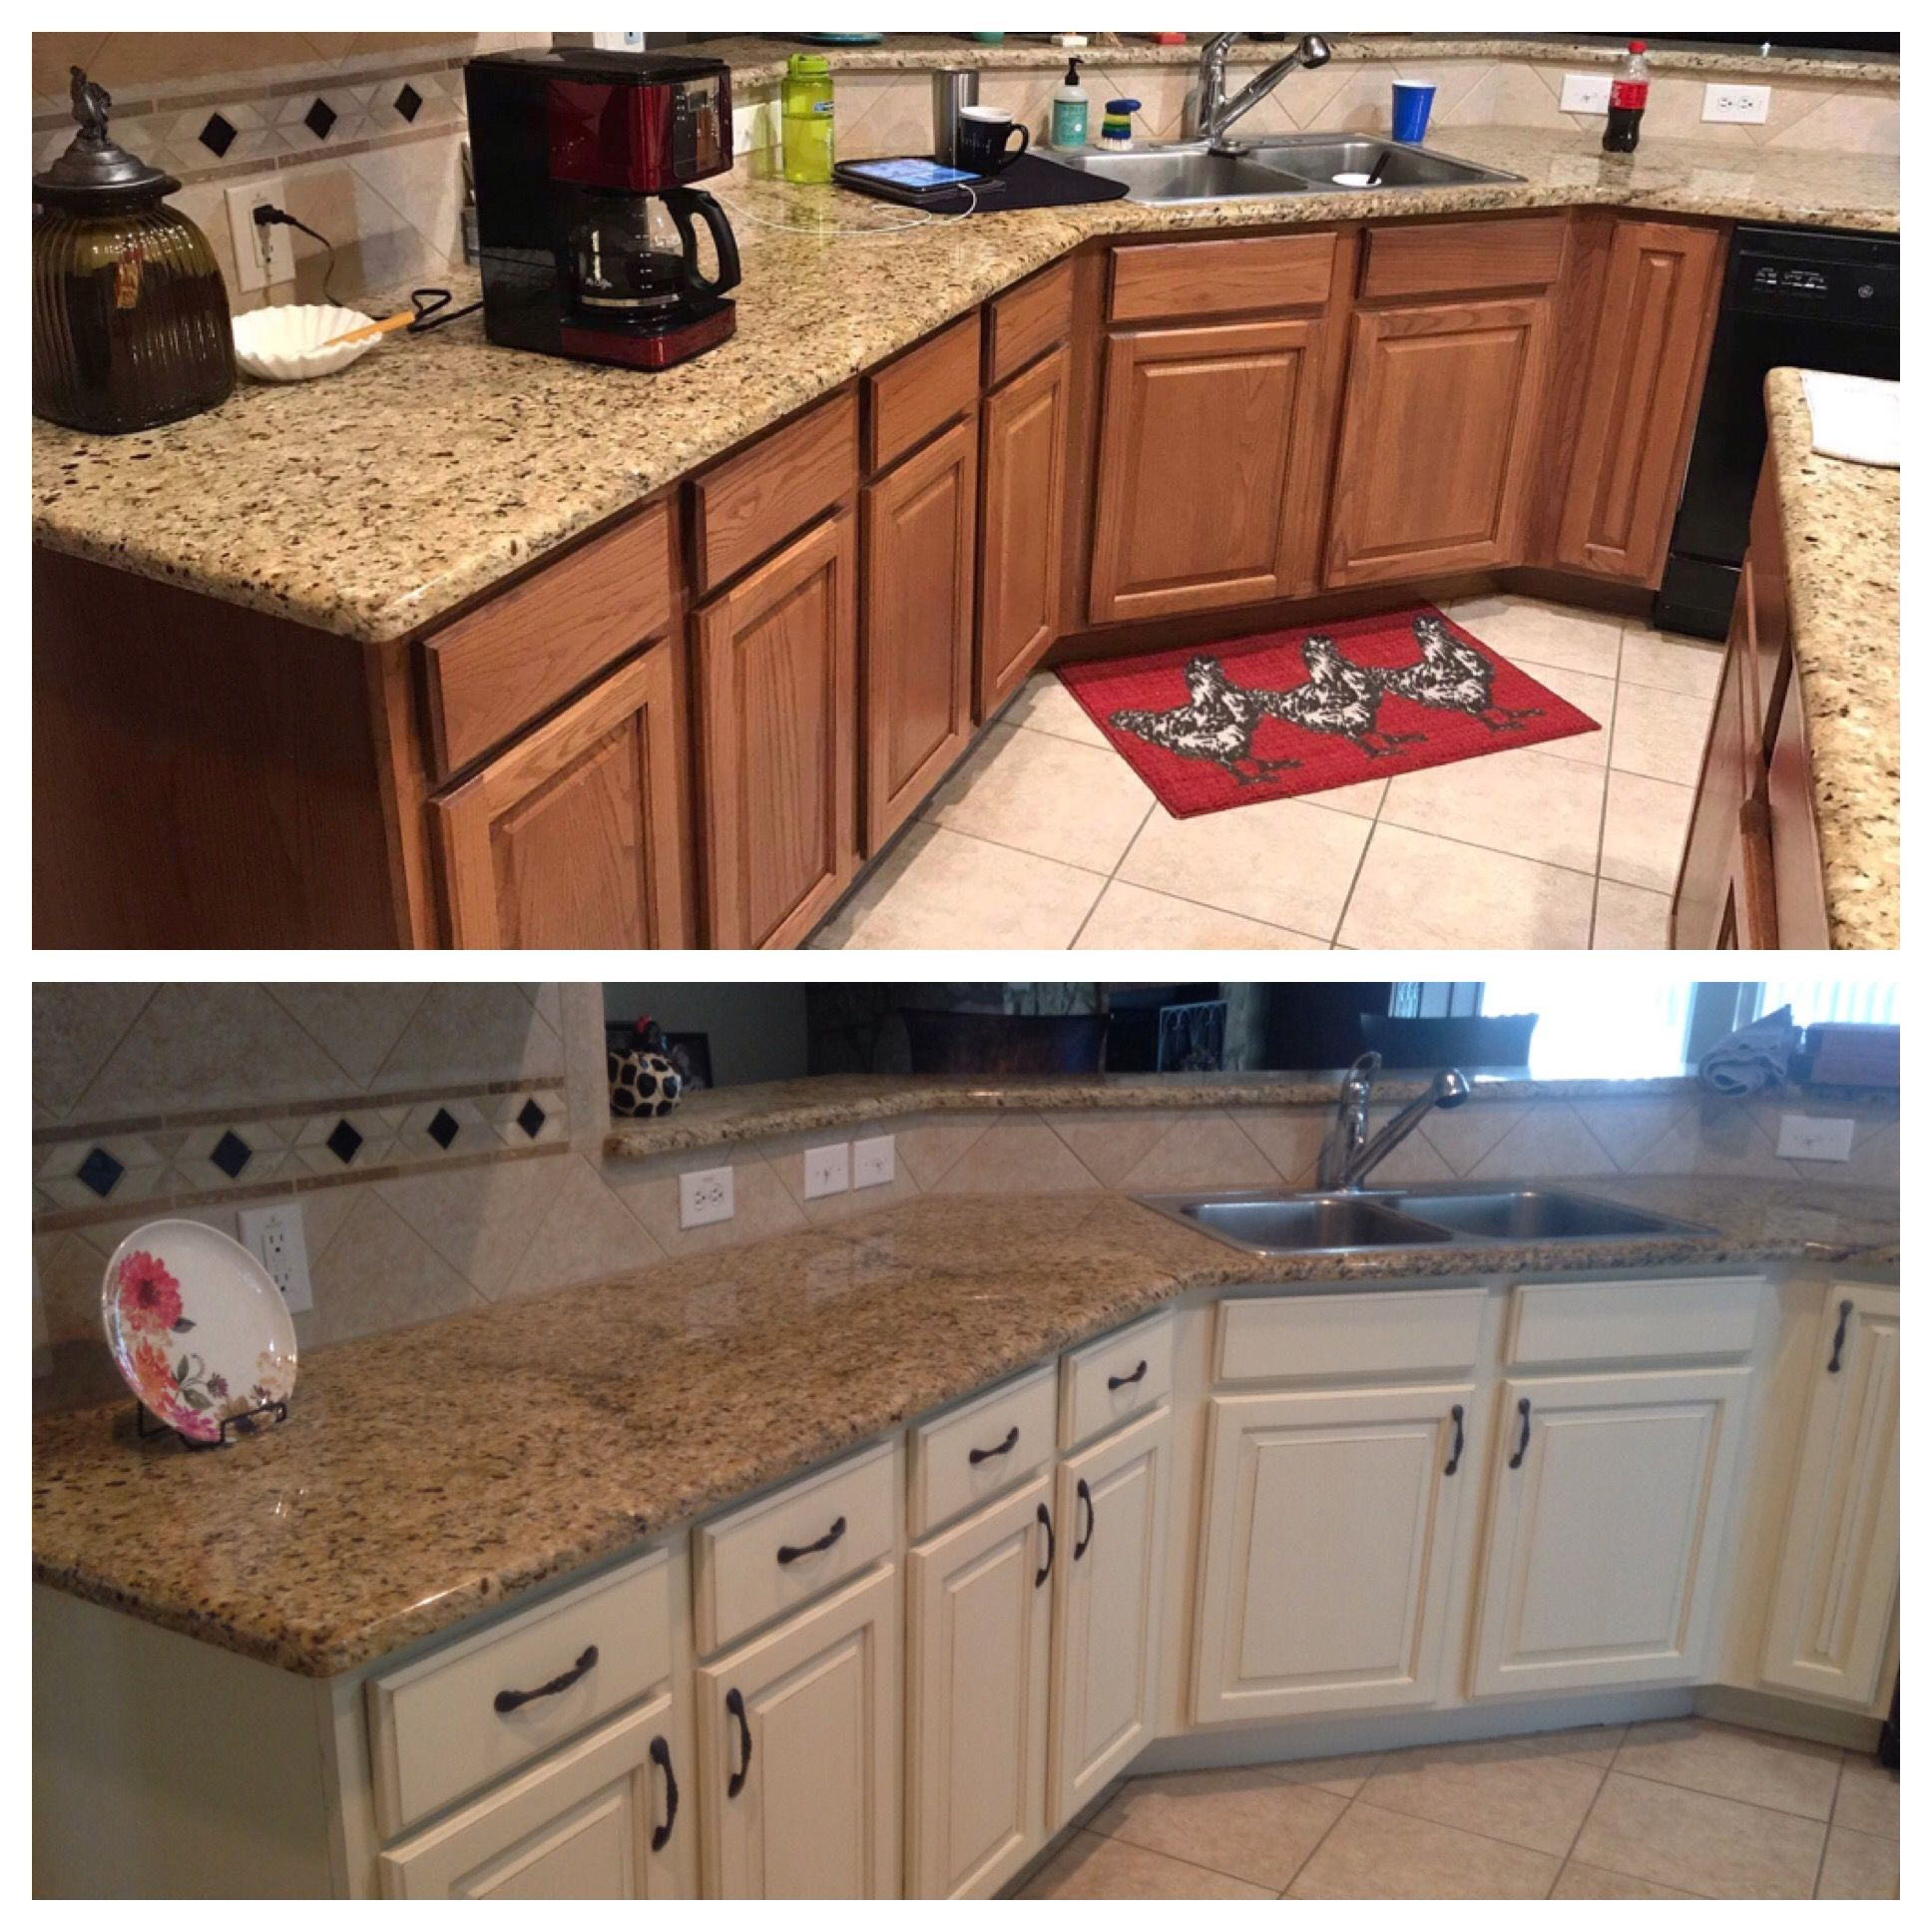 Kitchen Refresh Had The Cabinets Painted And Antiqued With Off White Chalk Paint Redo Kitchen Cabinets Oak Kitchen Cabinets Kitchen Cabinets